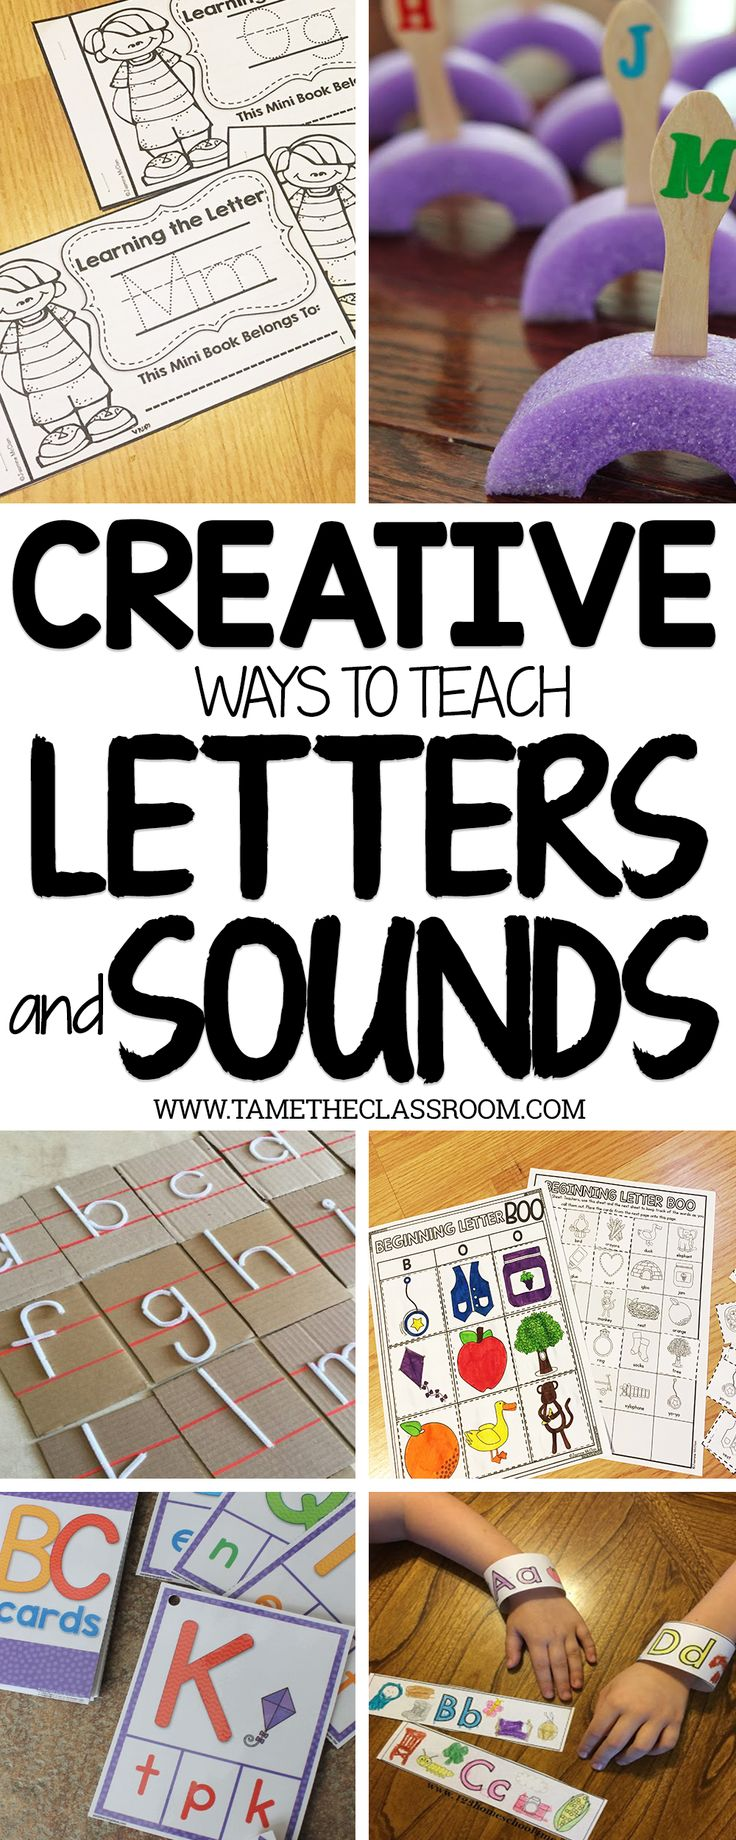 Need creative ways to teach letters and sounds? Here are a few ideas to get you going.